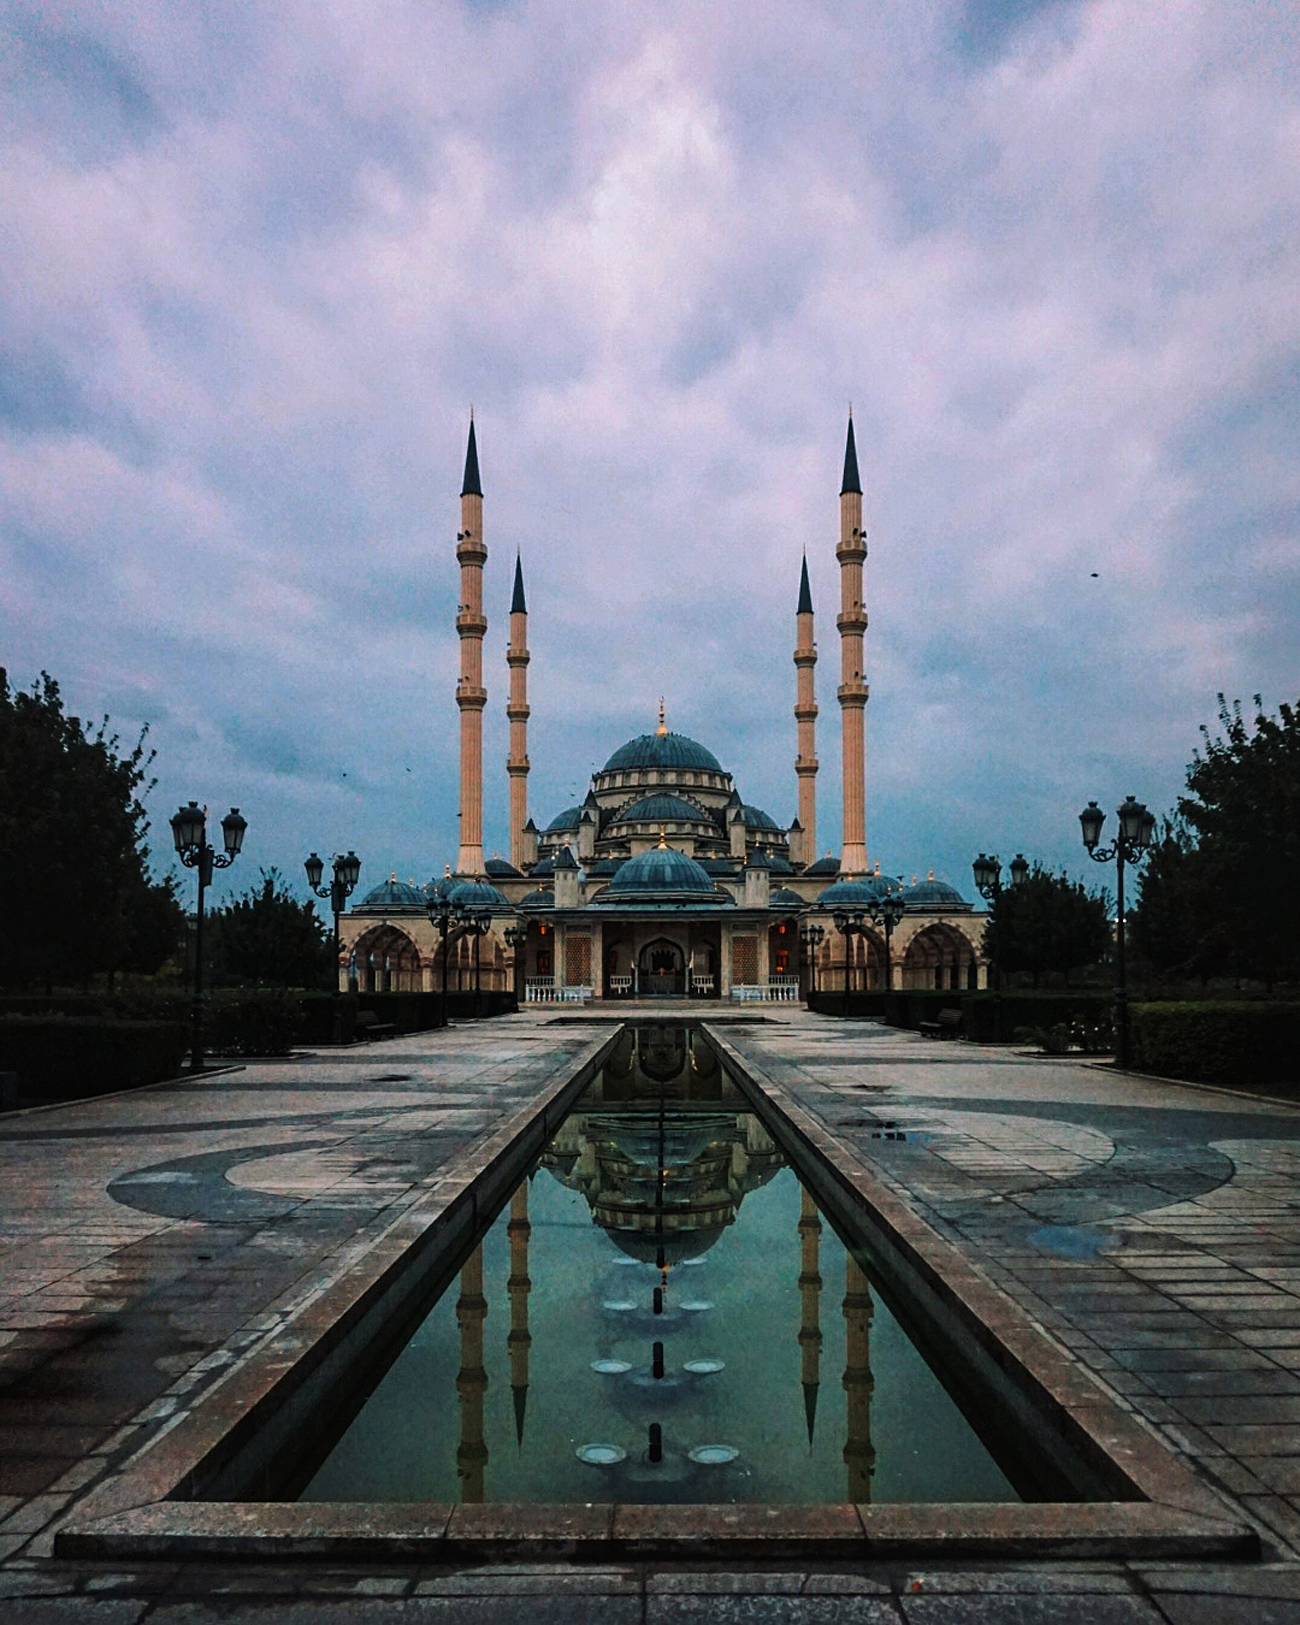 """The Heart of Chechnya mosque in Grozny. Source: <a  data-cke-saved-href=""""http://www.pictaram.com/user/unknown_caucasus/2533907852"""" href=""""http://www.pictaram.com/user/unknown_caucasus/2533907852"""" target=""""_blank"""">Muslim Alimirzaev</a>"""